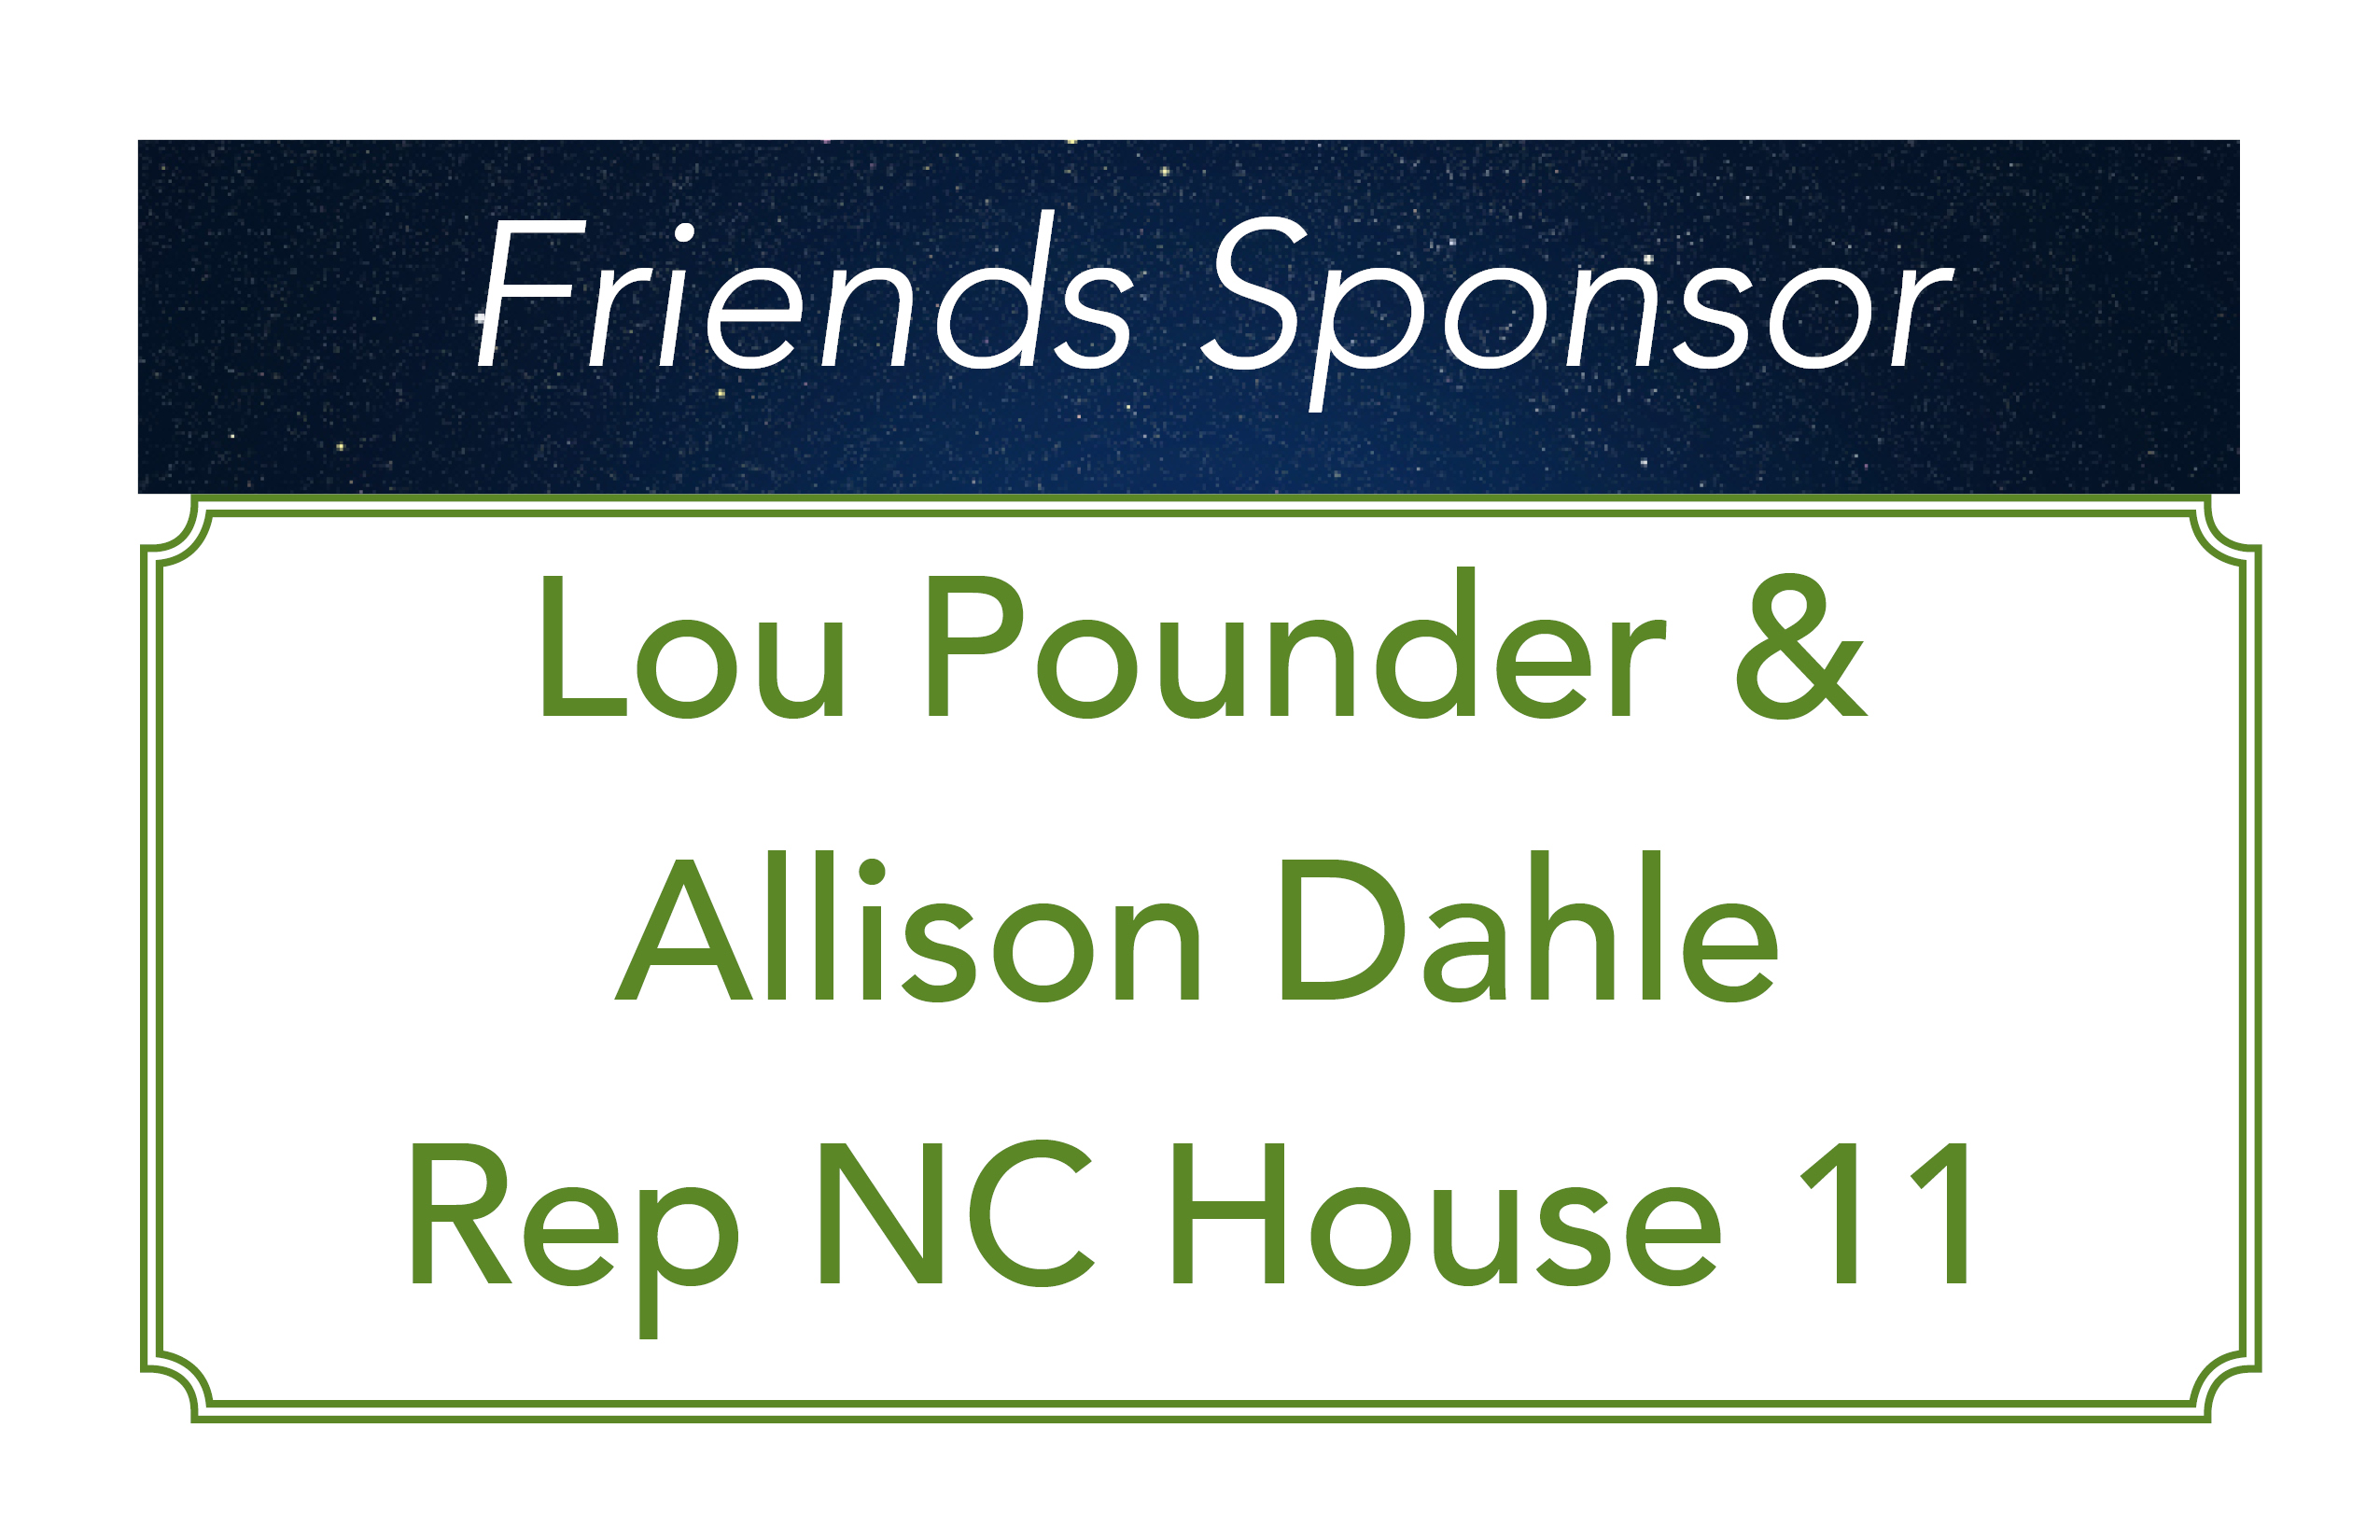 Lou Pounder and Allison Dahle, Friends Sponsor